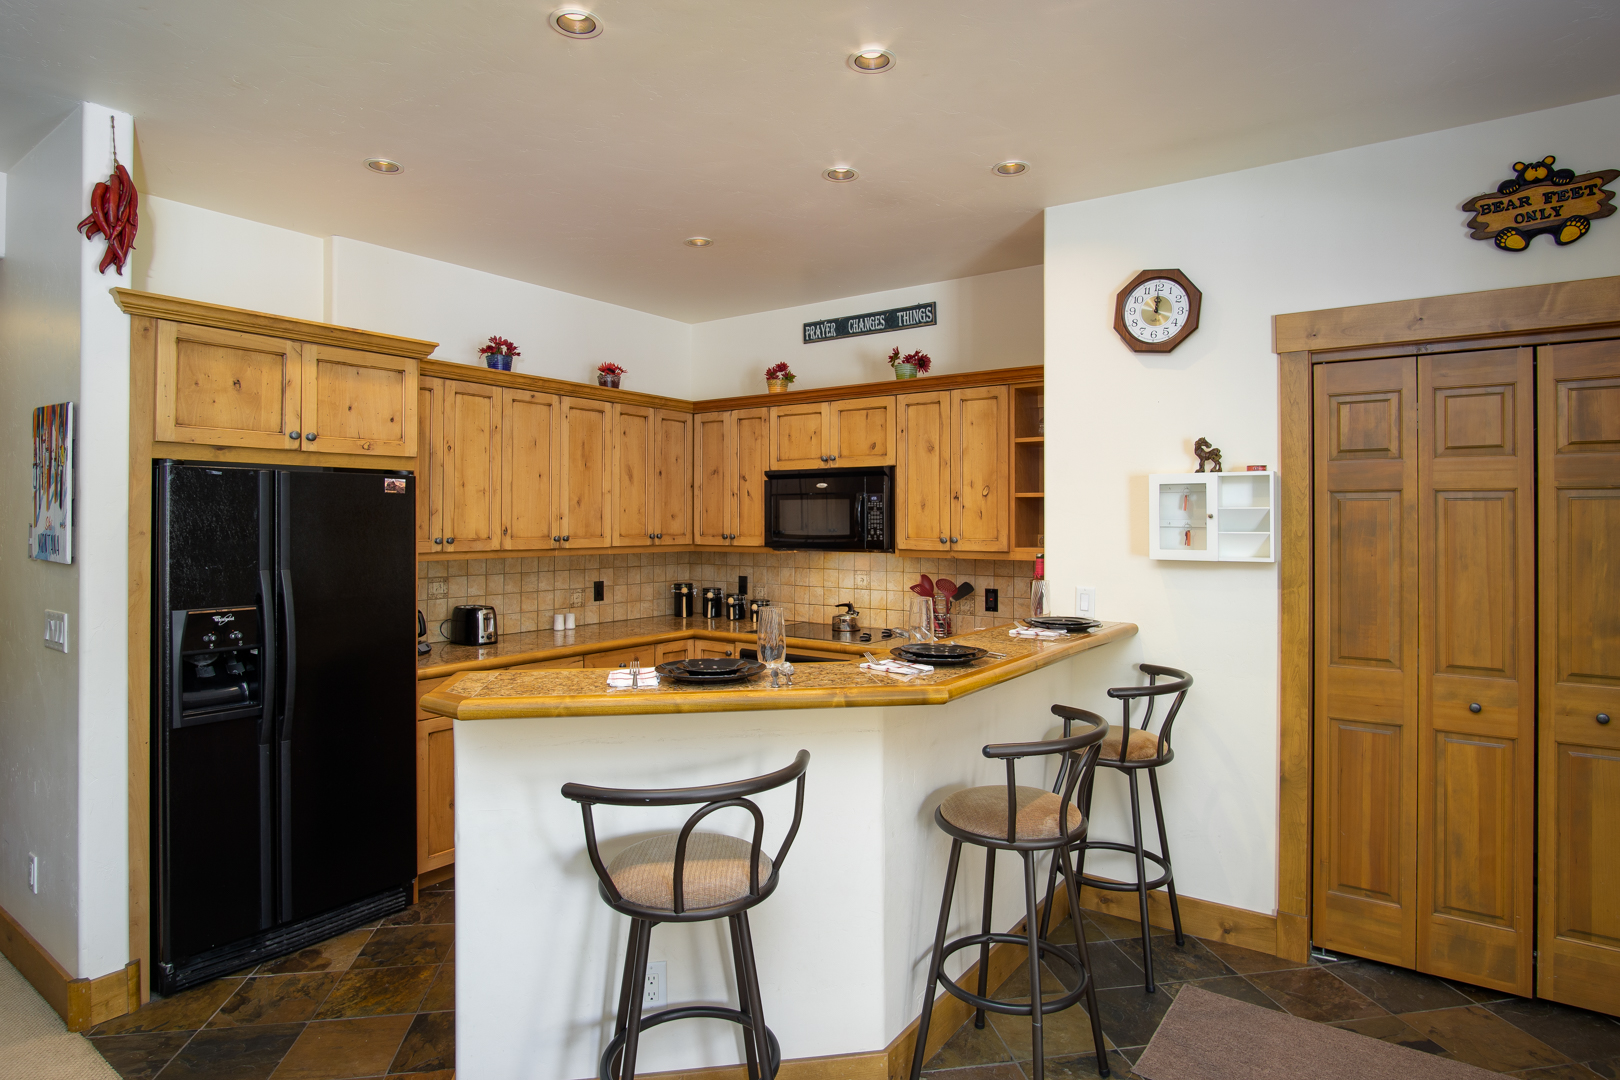 Fully Equipped Kitchen with 3 Stools at the Breakfast Bar